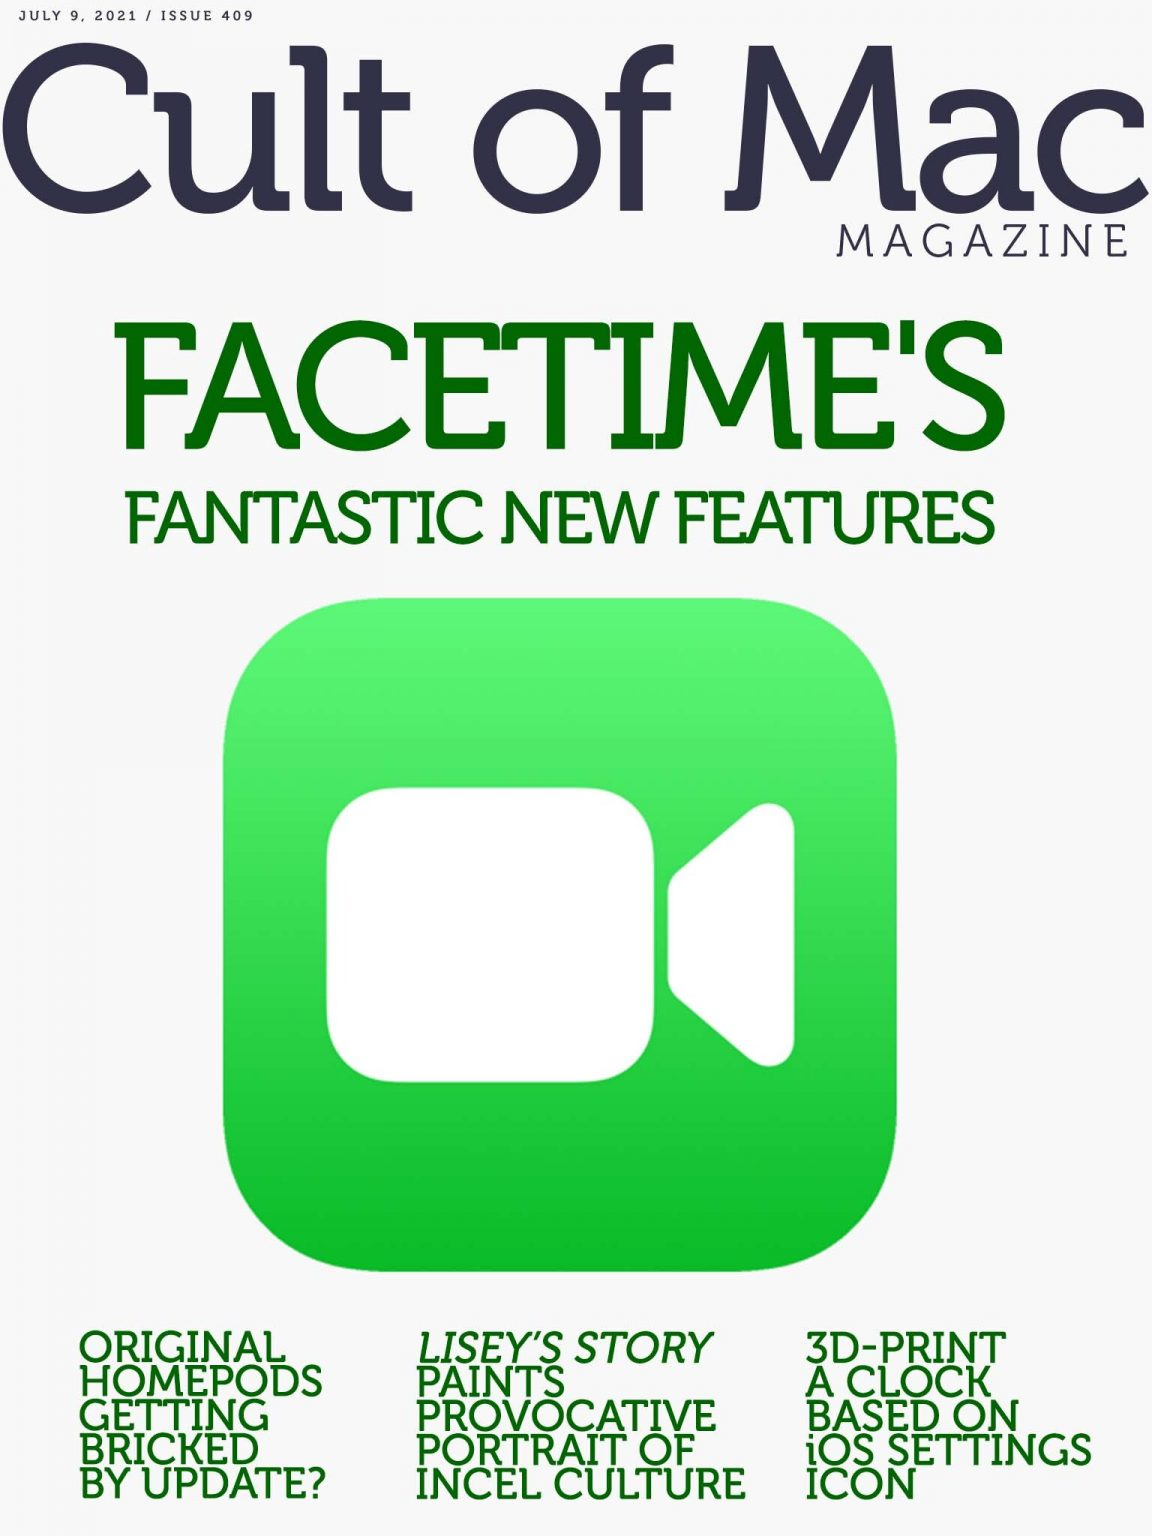 Find out how to use FaceTime's hot new features.